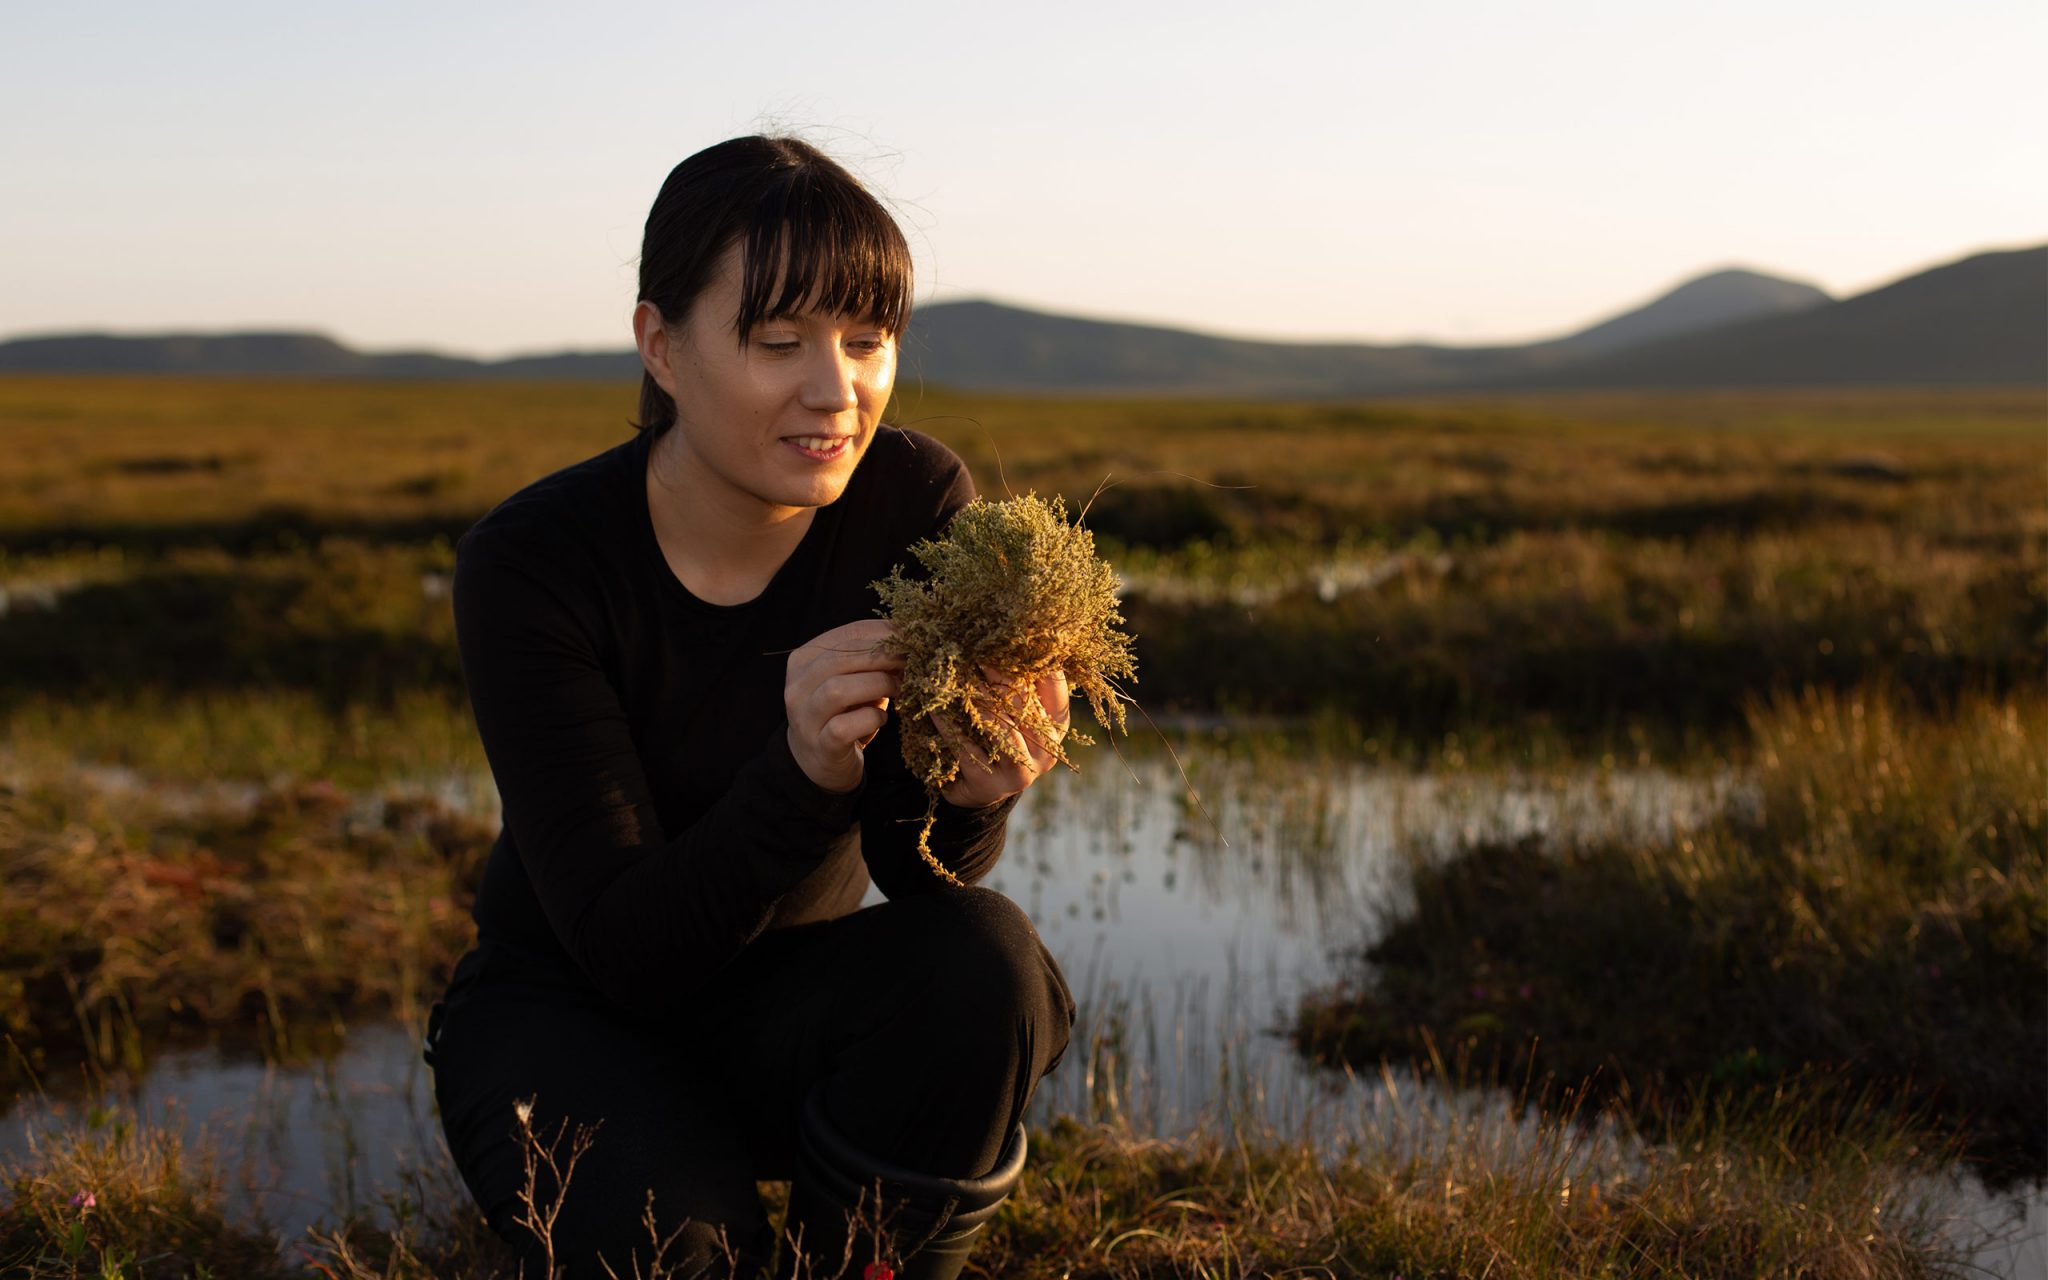 Dr. Nicholle Bell. Soil Scientist inspecting Sphagnum moss and other flora at Forsinard Flows, Highlands, Scotland. Specializing in the study of Peatlands and their carbon sequestration abilities. A participant and Principle Investigator on the NERC Soil Security Programme 2019.